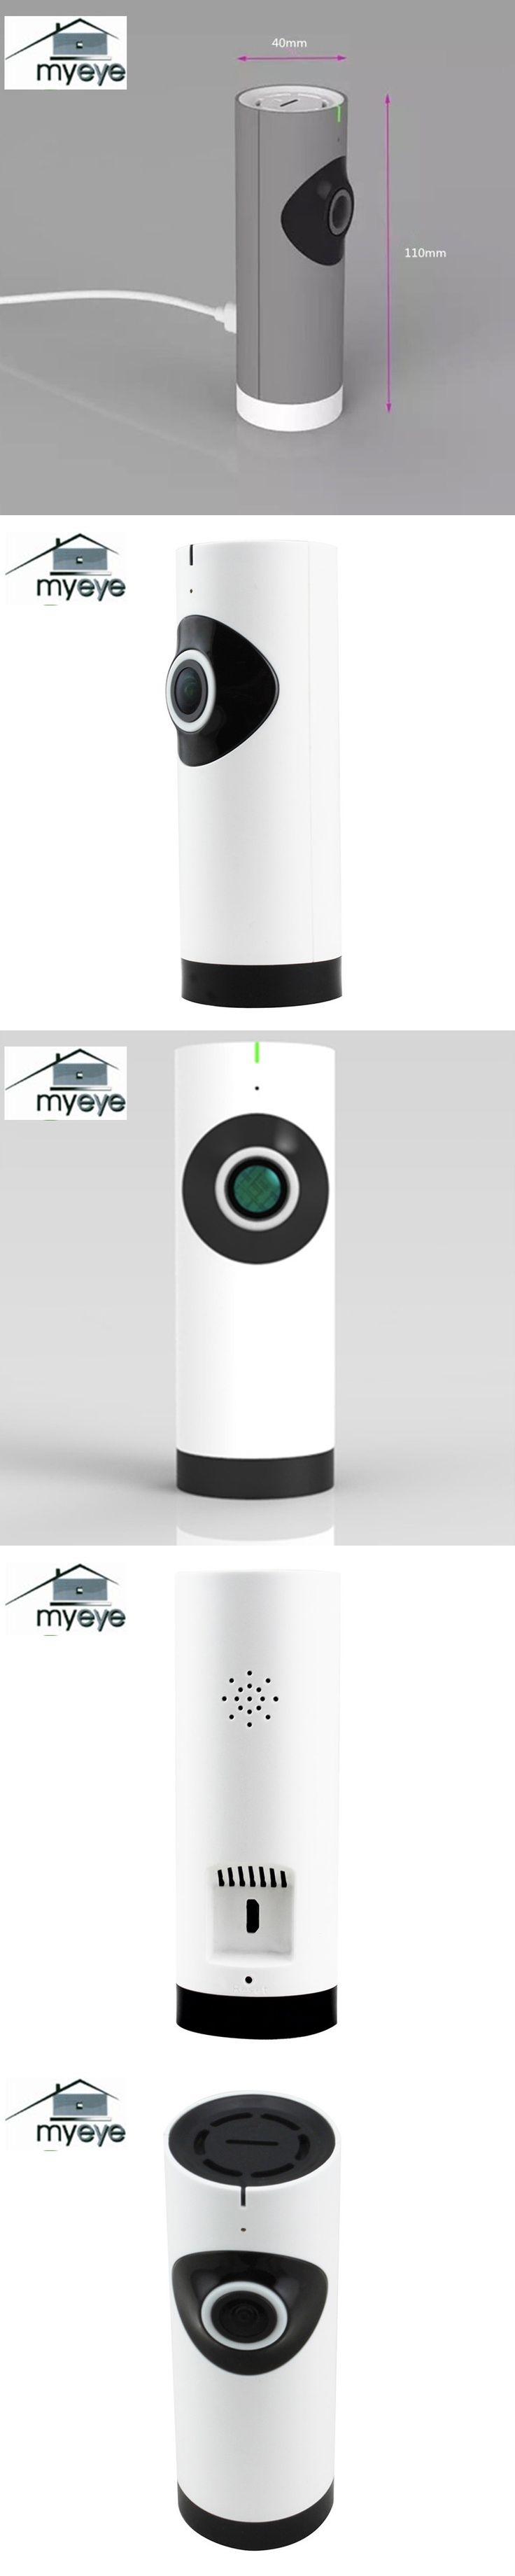 FYF WIFI  IP Camera 720P 1.0MP 180 Degree Fisheye Mini Panoramic IP Camera Home Security Video Surveillance IP Camera